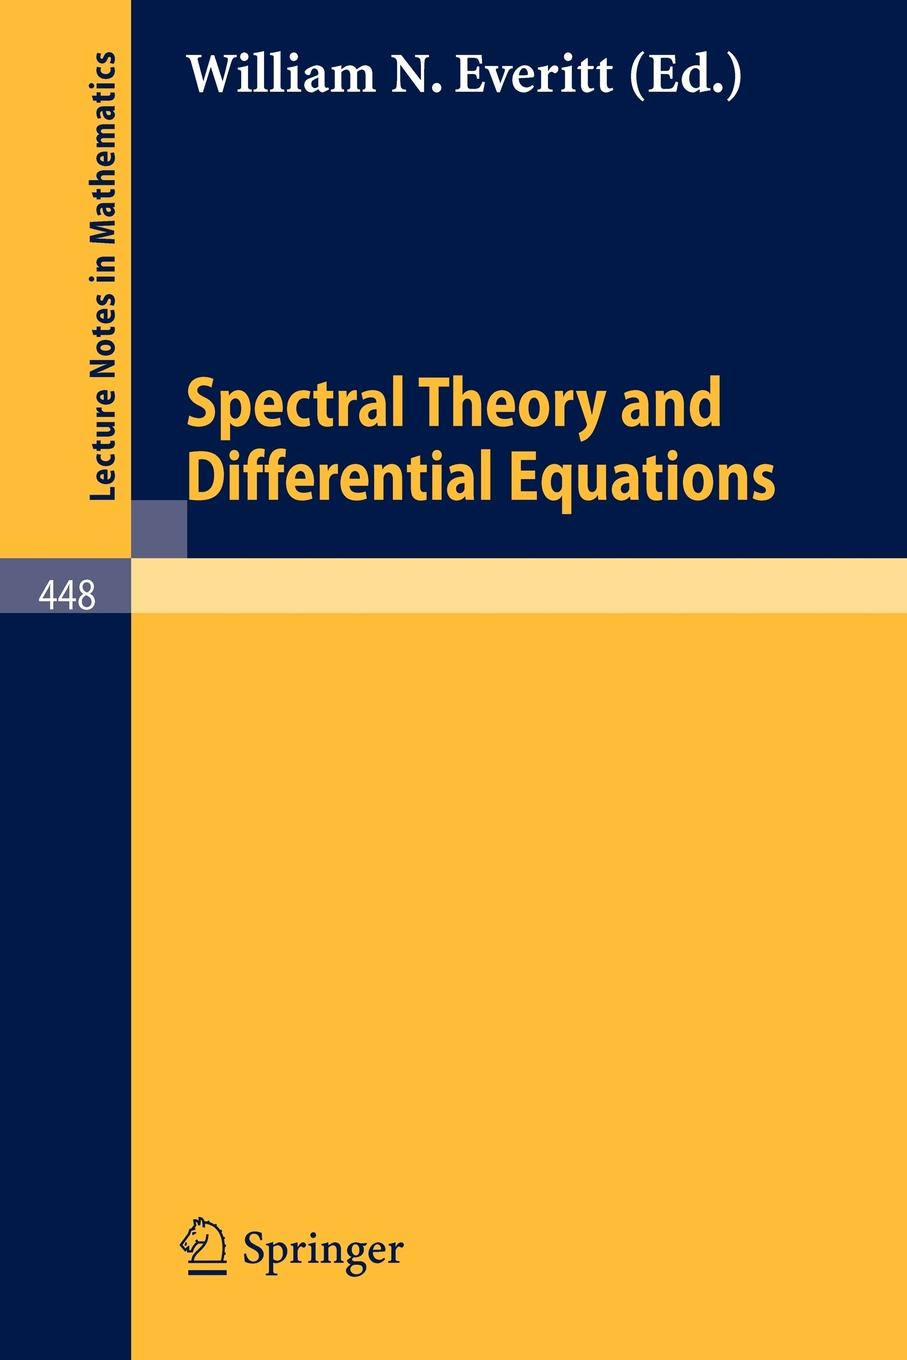 Spectral Theory and Differential Equations. Proceedings of the Symposium Held at Dundee, Scotland, July 1-19, 1974 qualitative theory of differential equations